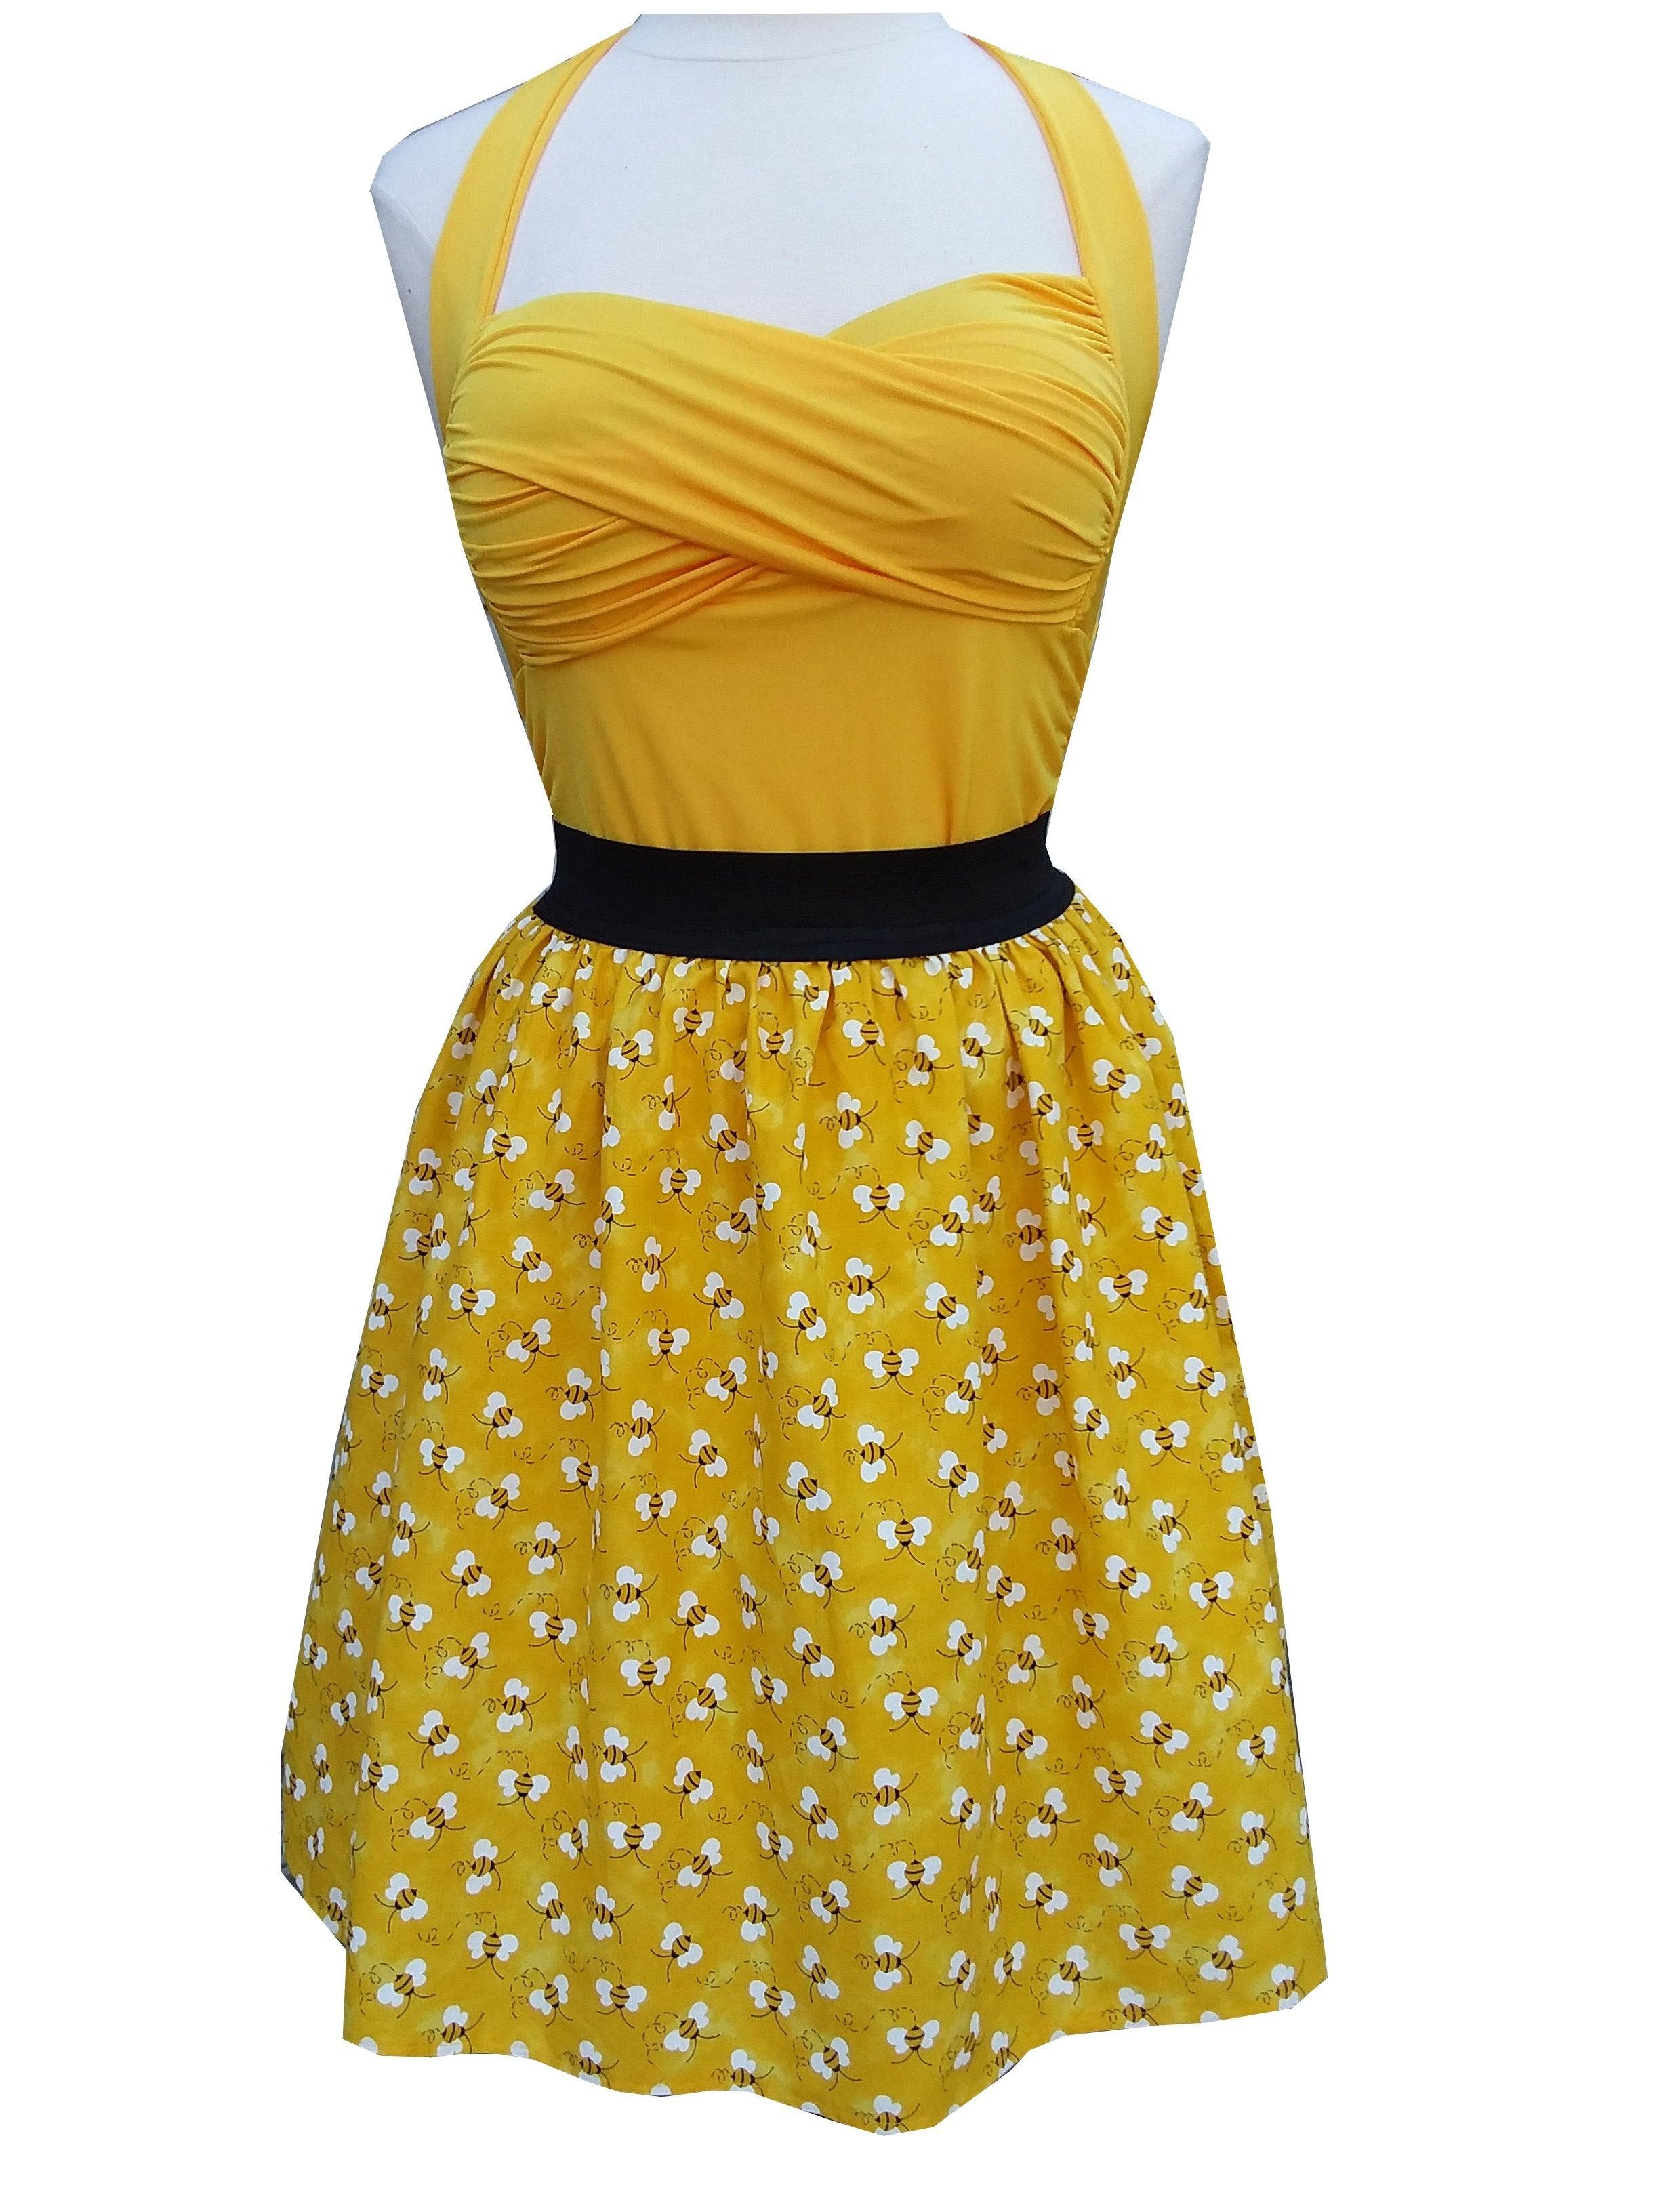 Bumble-Bee Yellow Gathered Elastic waist skirt Retro Pin-up - Cool Hot Fashions